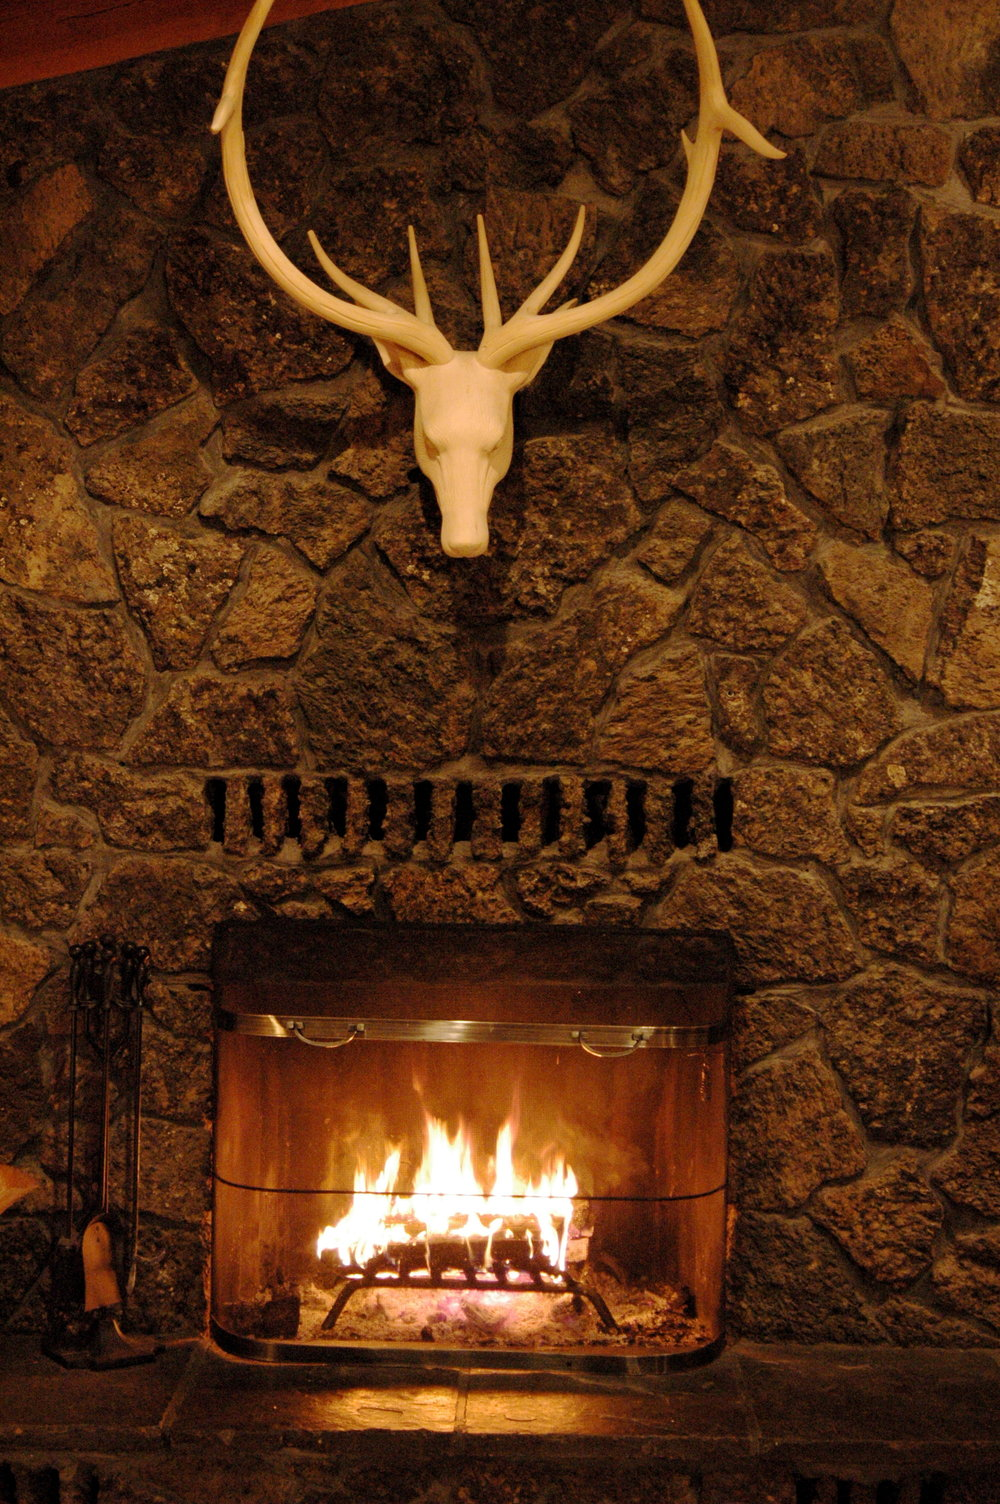 Fireplace.jpeg